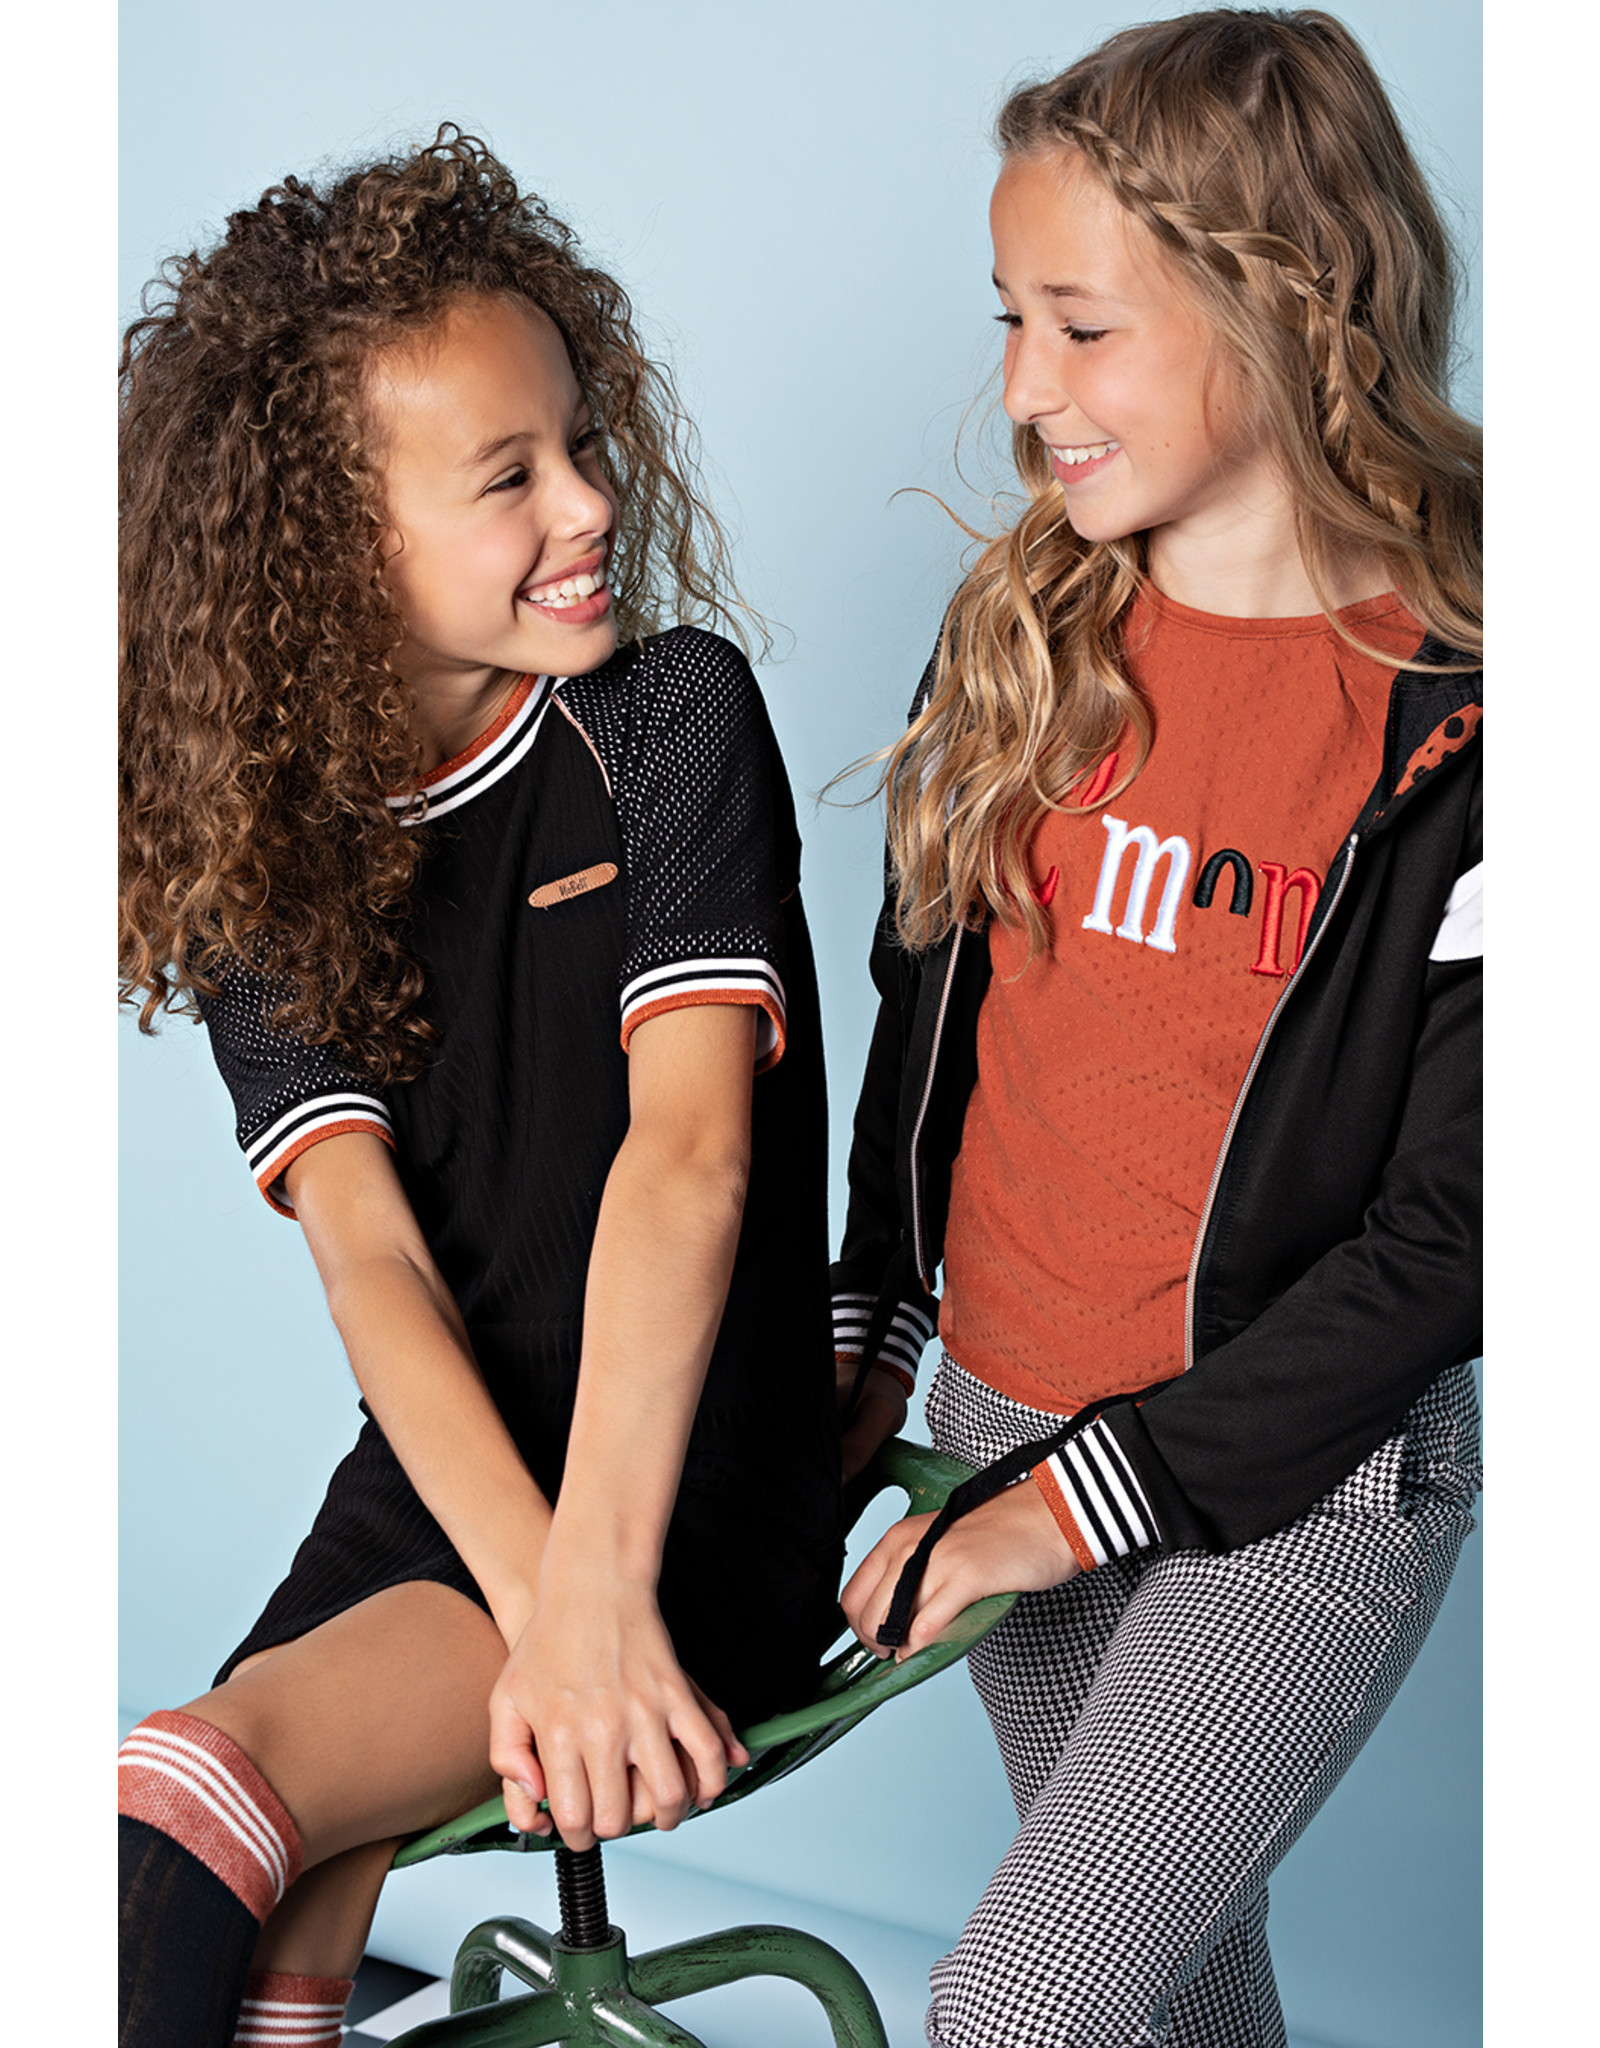 NoBell NoBell Maura hs T-shirt in rib/mesh combi with piping stripes JET BLACK